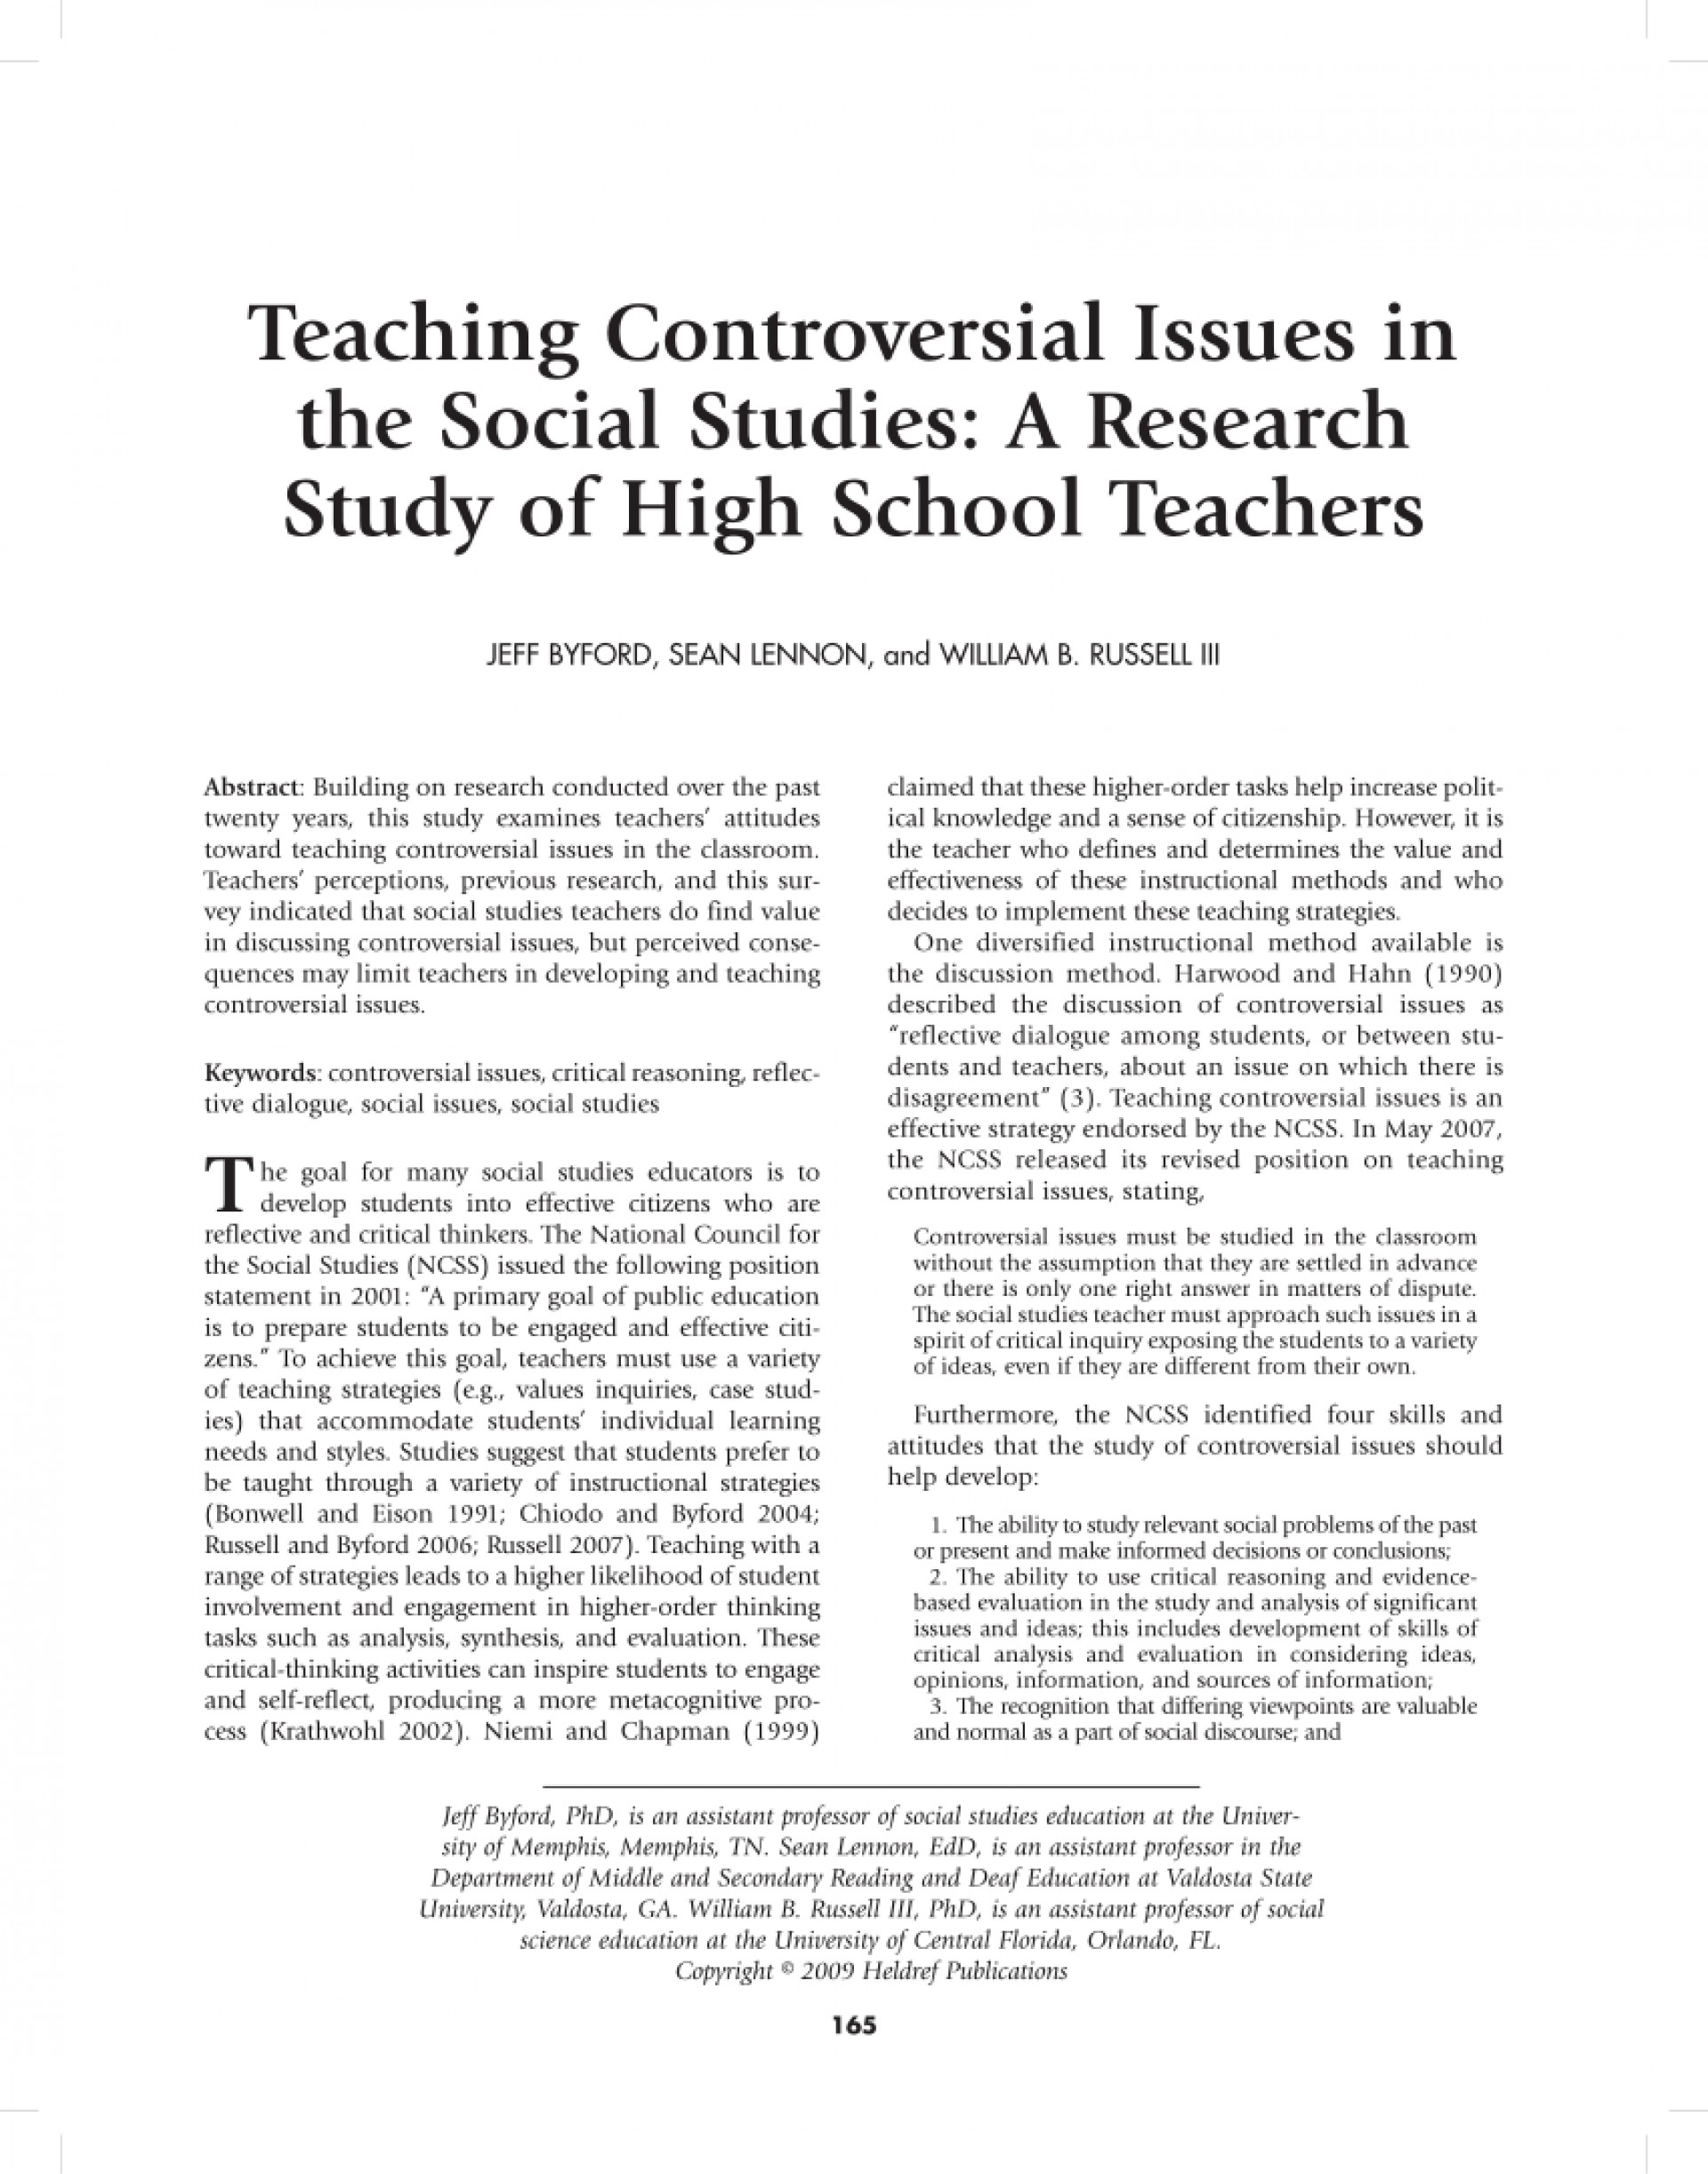 001 Current Controversial Topics For High School Researchs Largepreview Impressive Research Papers 1920